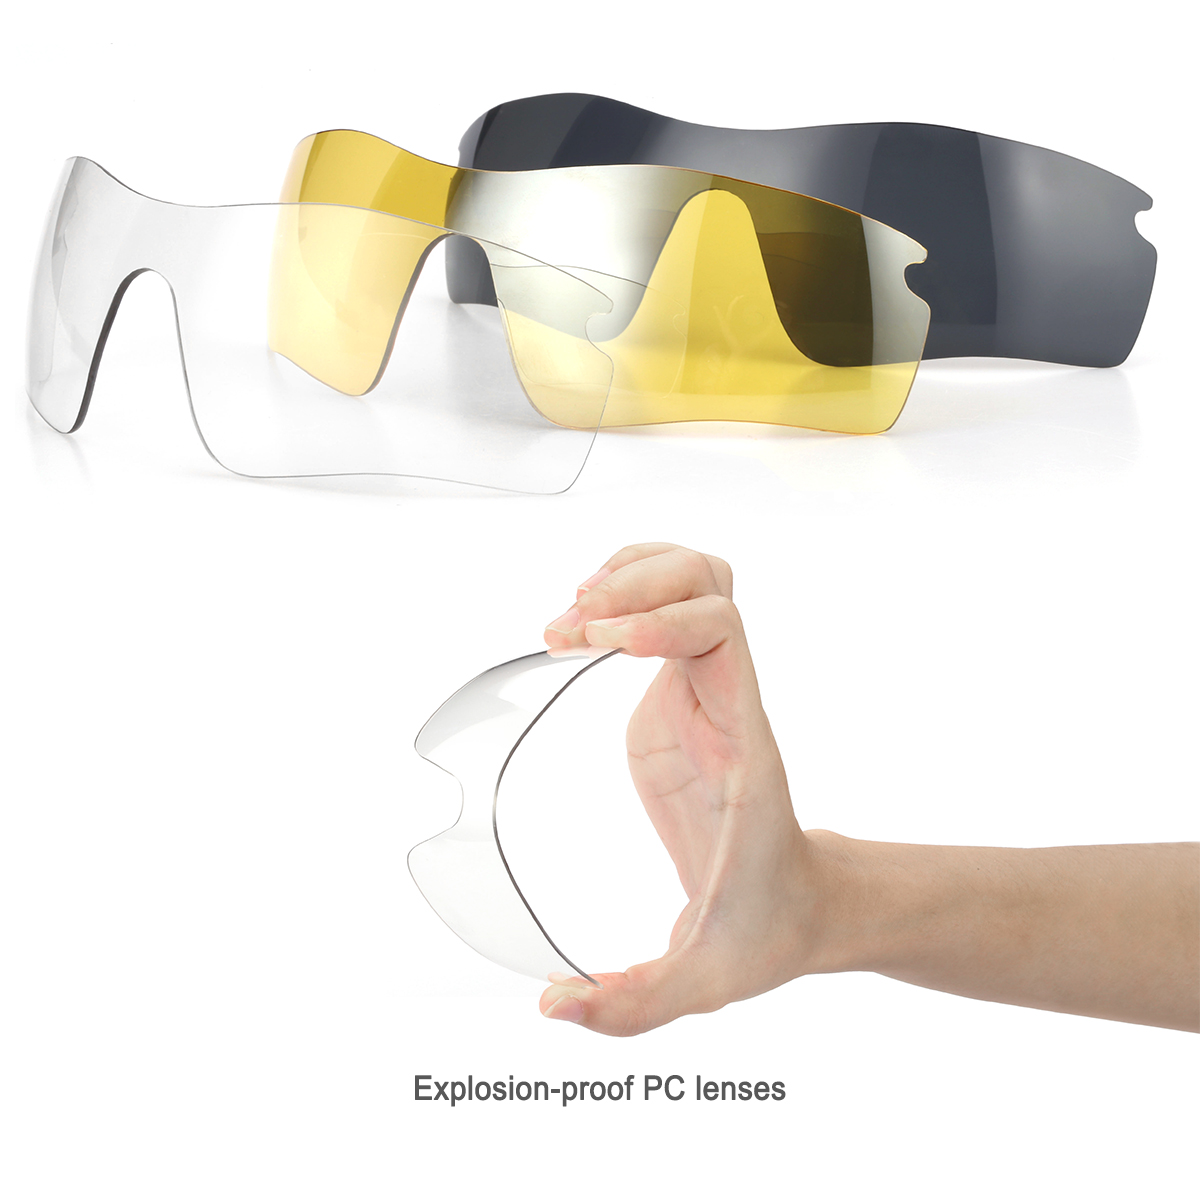 6107a0d898 1 SP108 cycling eyewear frame 1 discolores lens 1 gain light lens 1 polarized  lens 1 myopia frame 1 test card 1 hang rope 1 glass case 1 glass bag